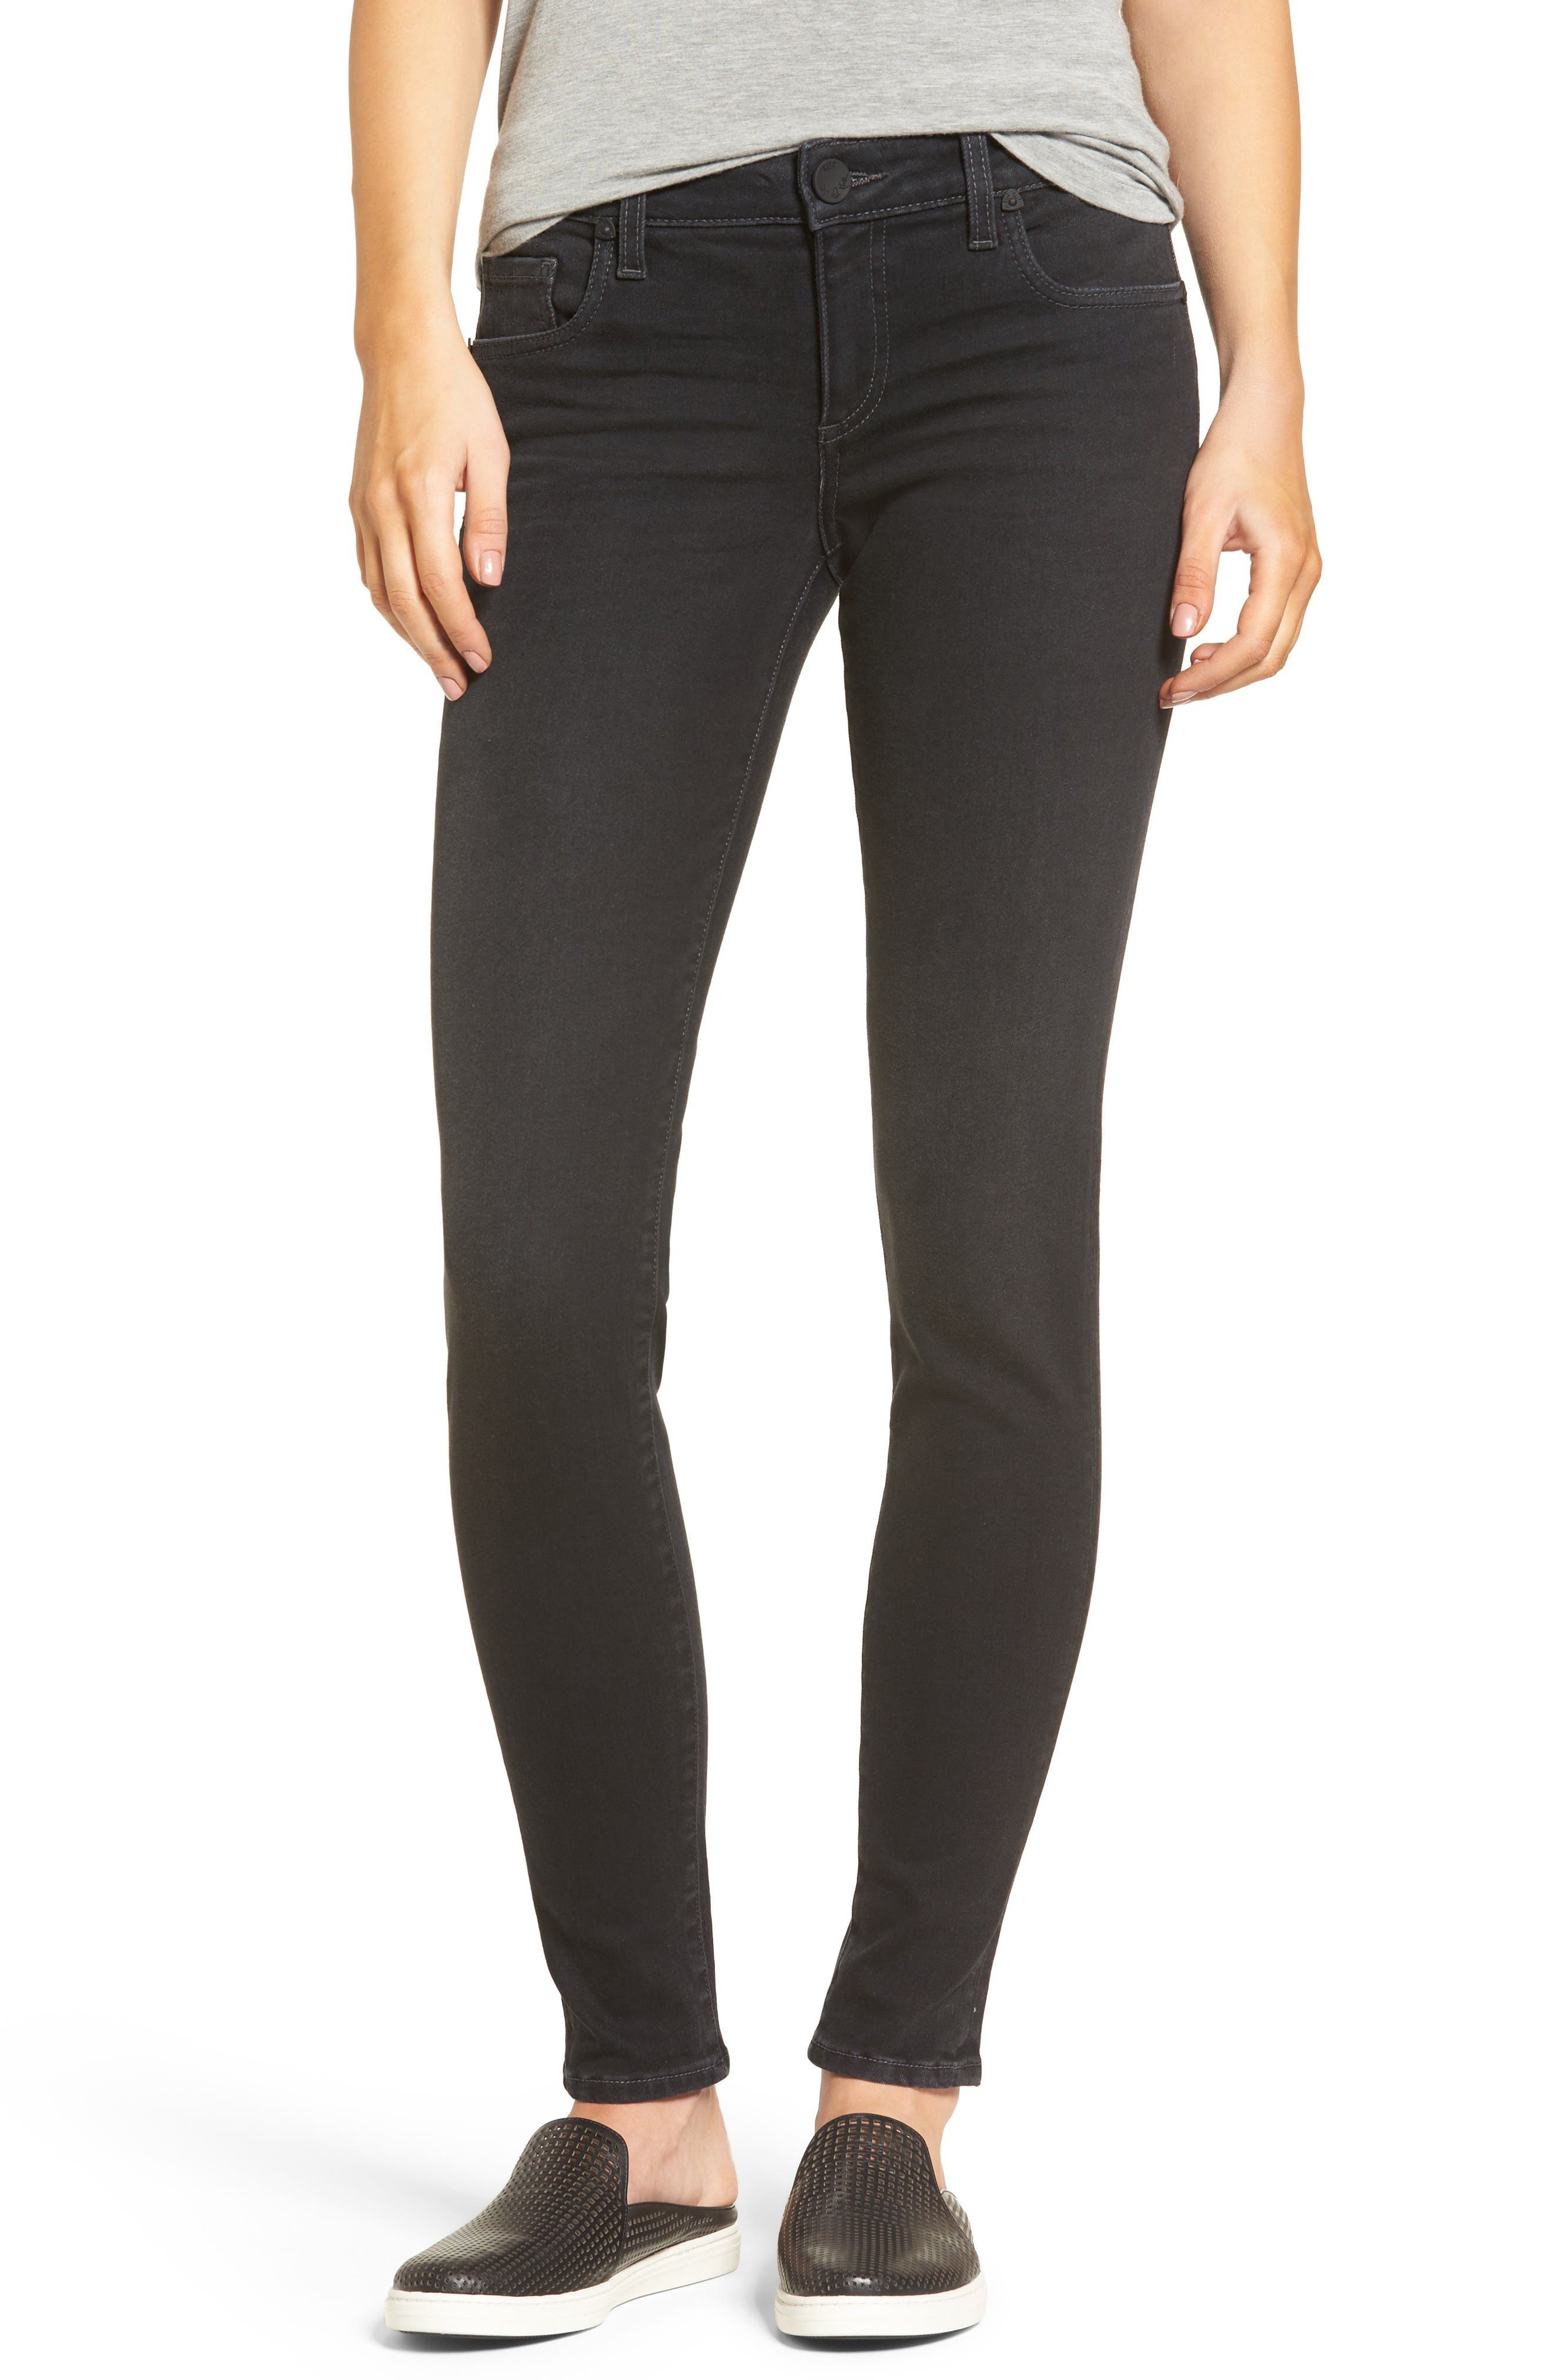 Main Image - KUT from the Kloth Donna Skinny Jeans (Perseverant) (Regular & Petite)